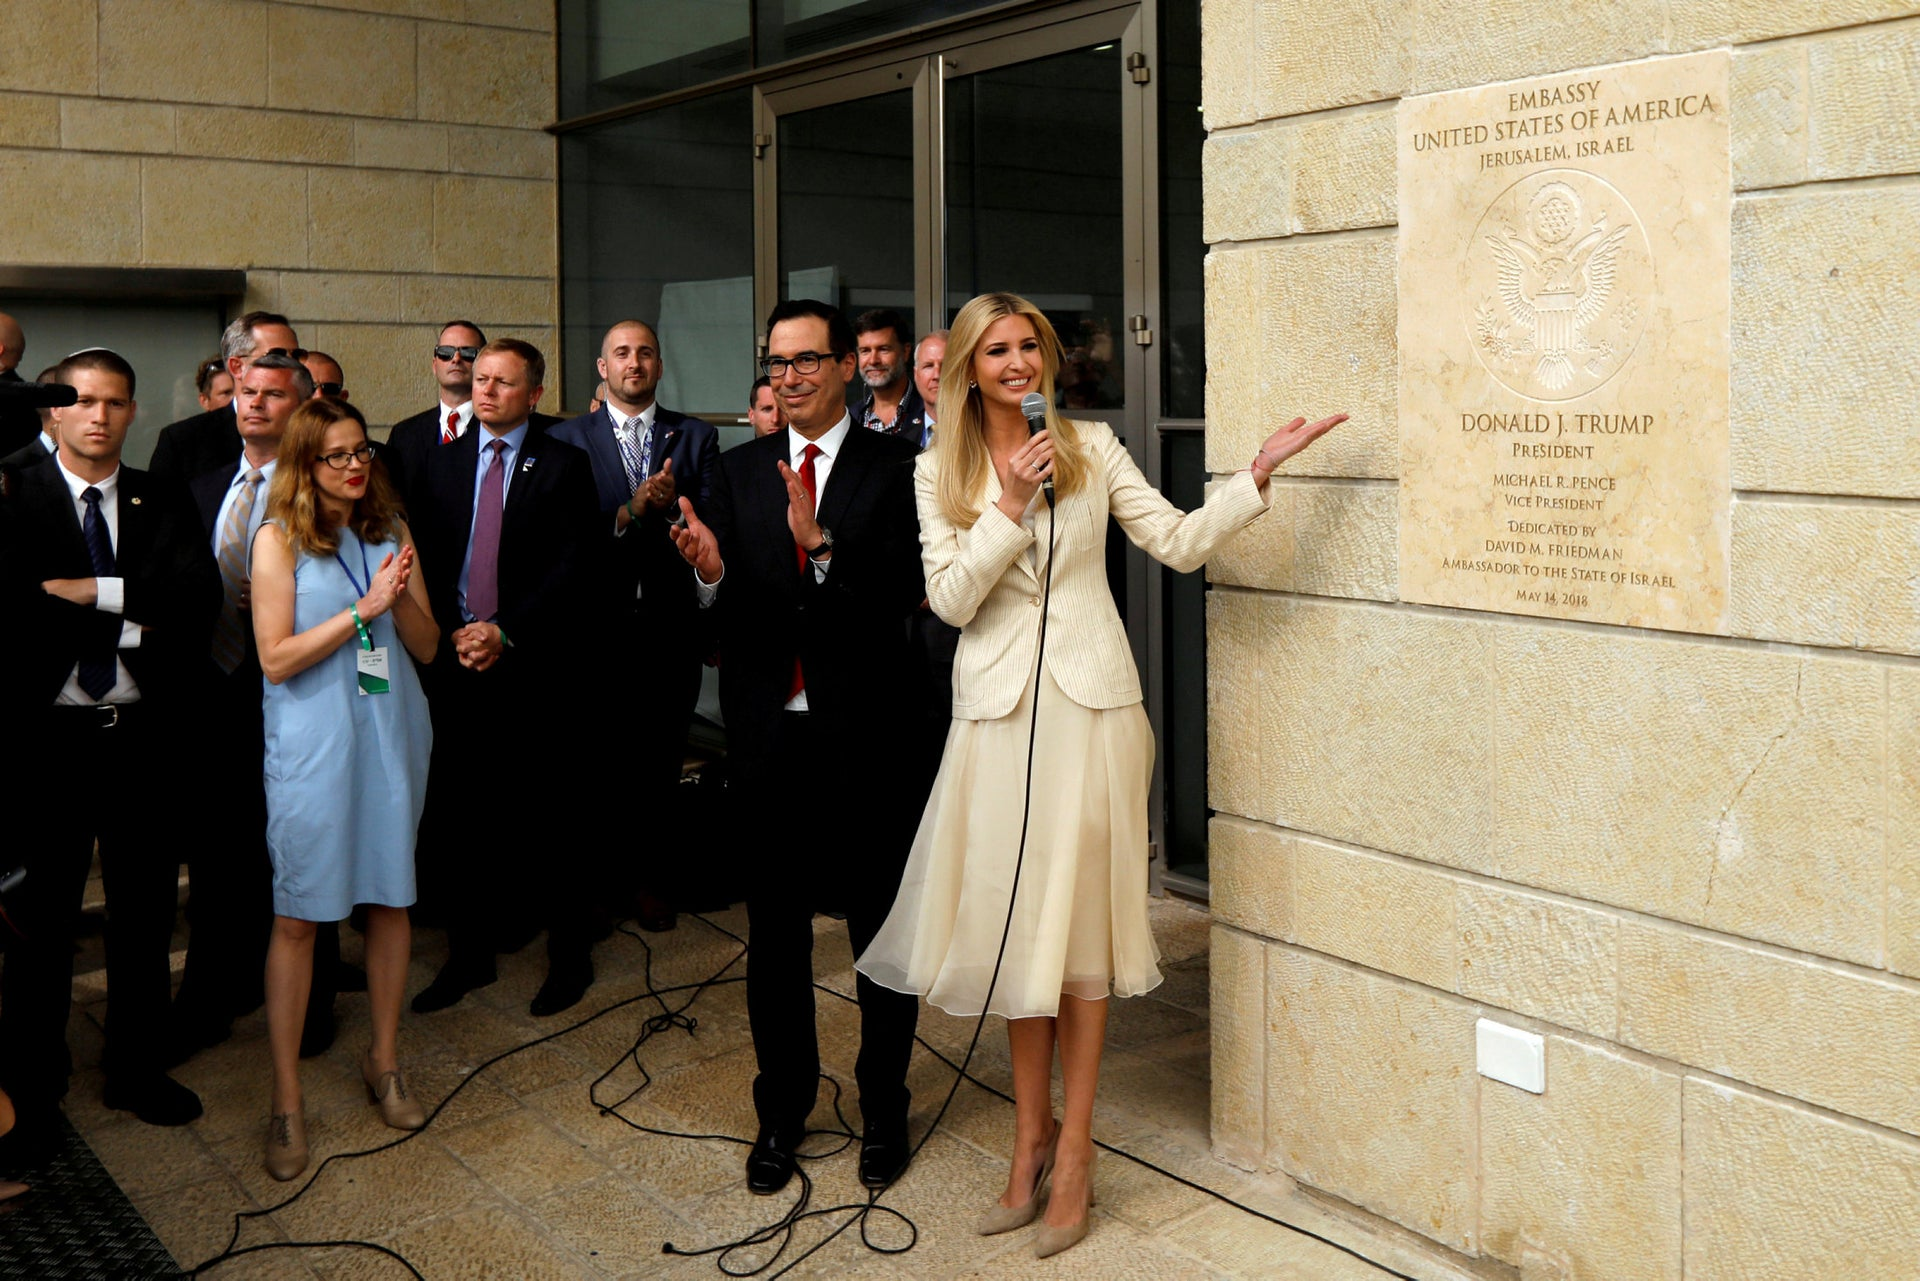 White House Senior Adviser Ivanka Trump and U.S. Treasury Secretary Steven Mnuchin attend the dedication ceremony of the new U.S. embassy in Jerusalem, May 14, 2018.